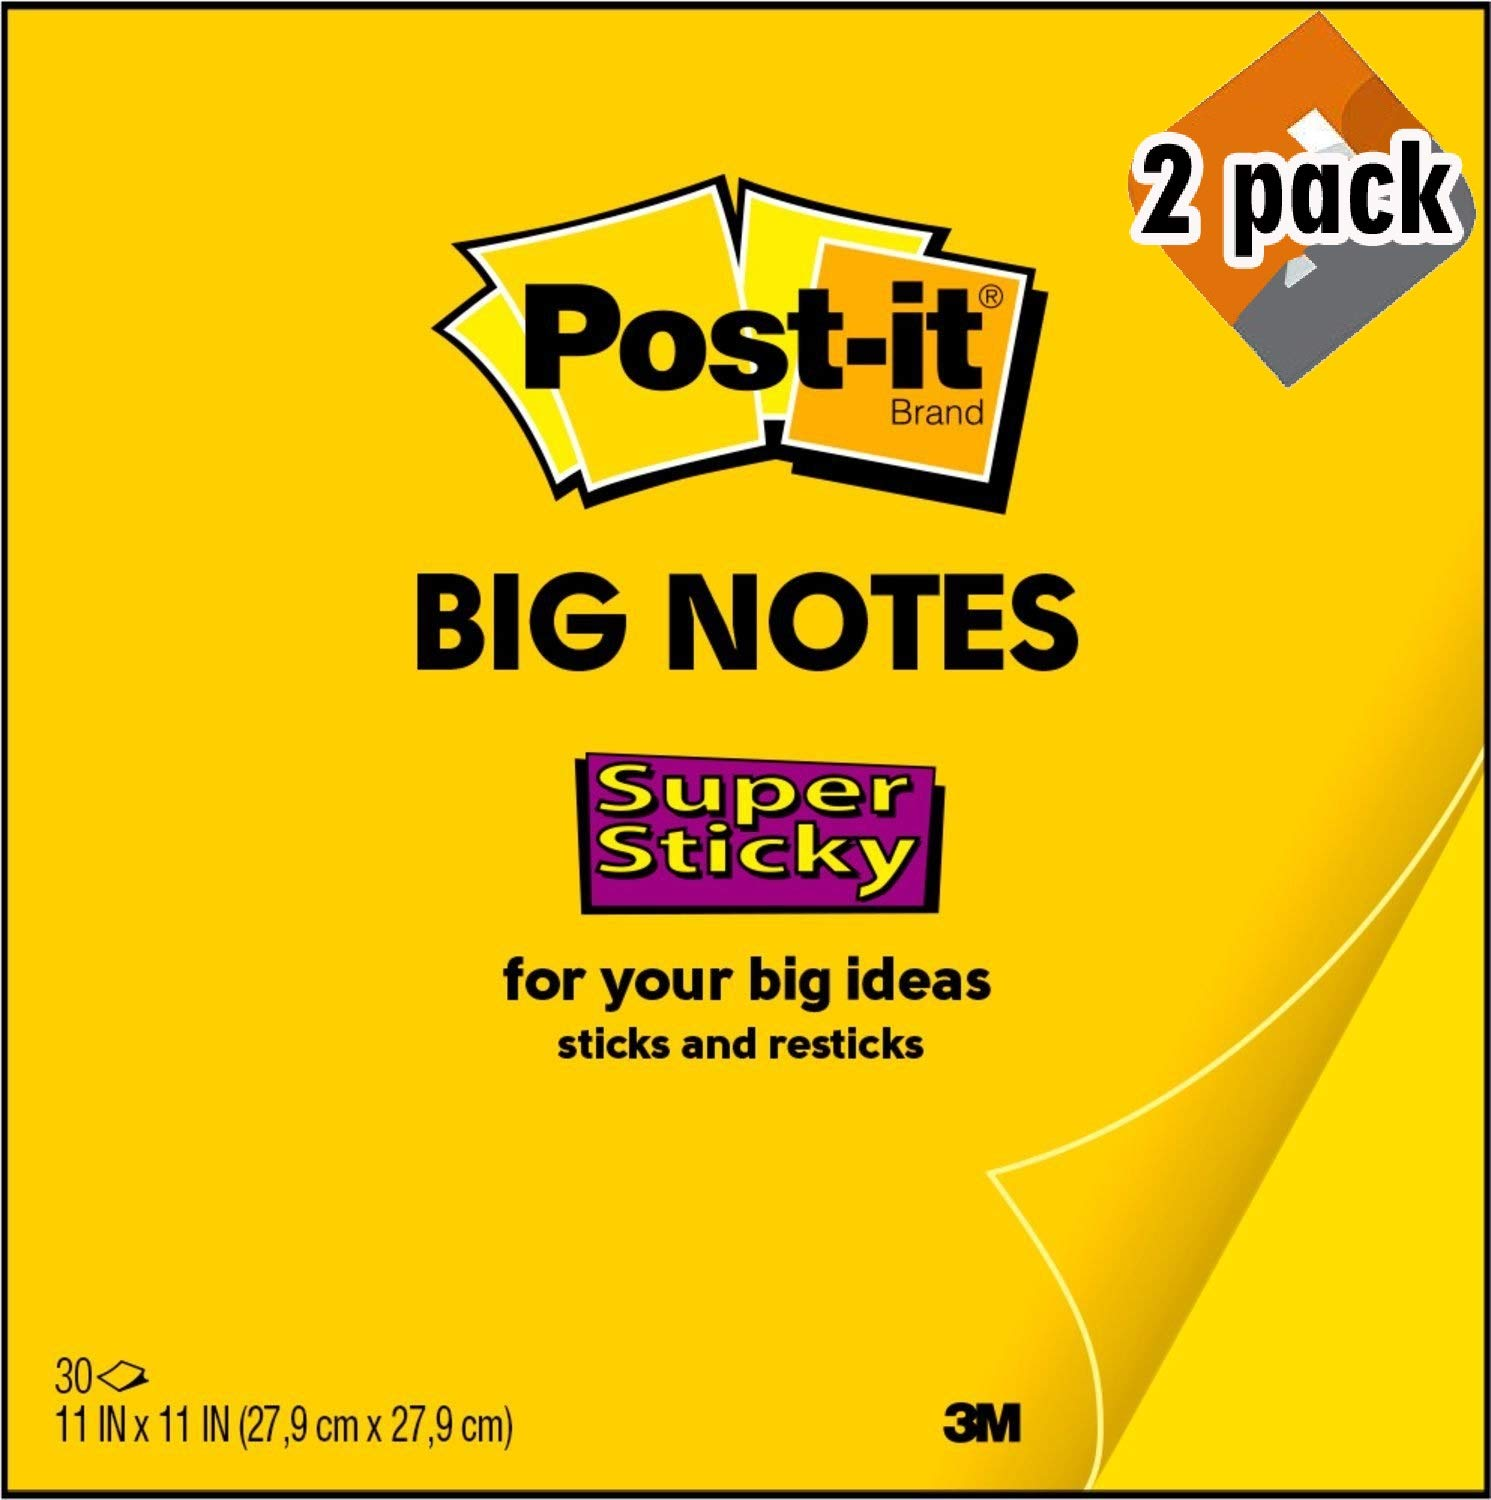 Post-it Super Sticky Big Notes, 11 x 11 Inches, 30 Sheets/Pad, 1 Pad (BN11), Large Bright Yellow Paper, Super Sticking Power, Sticks and Resticks (2 Pack)